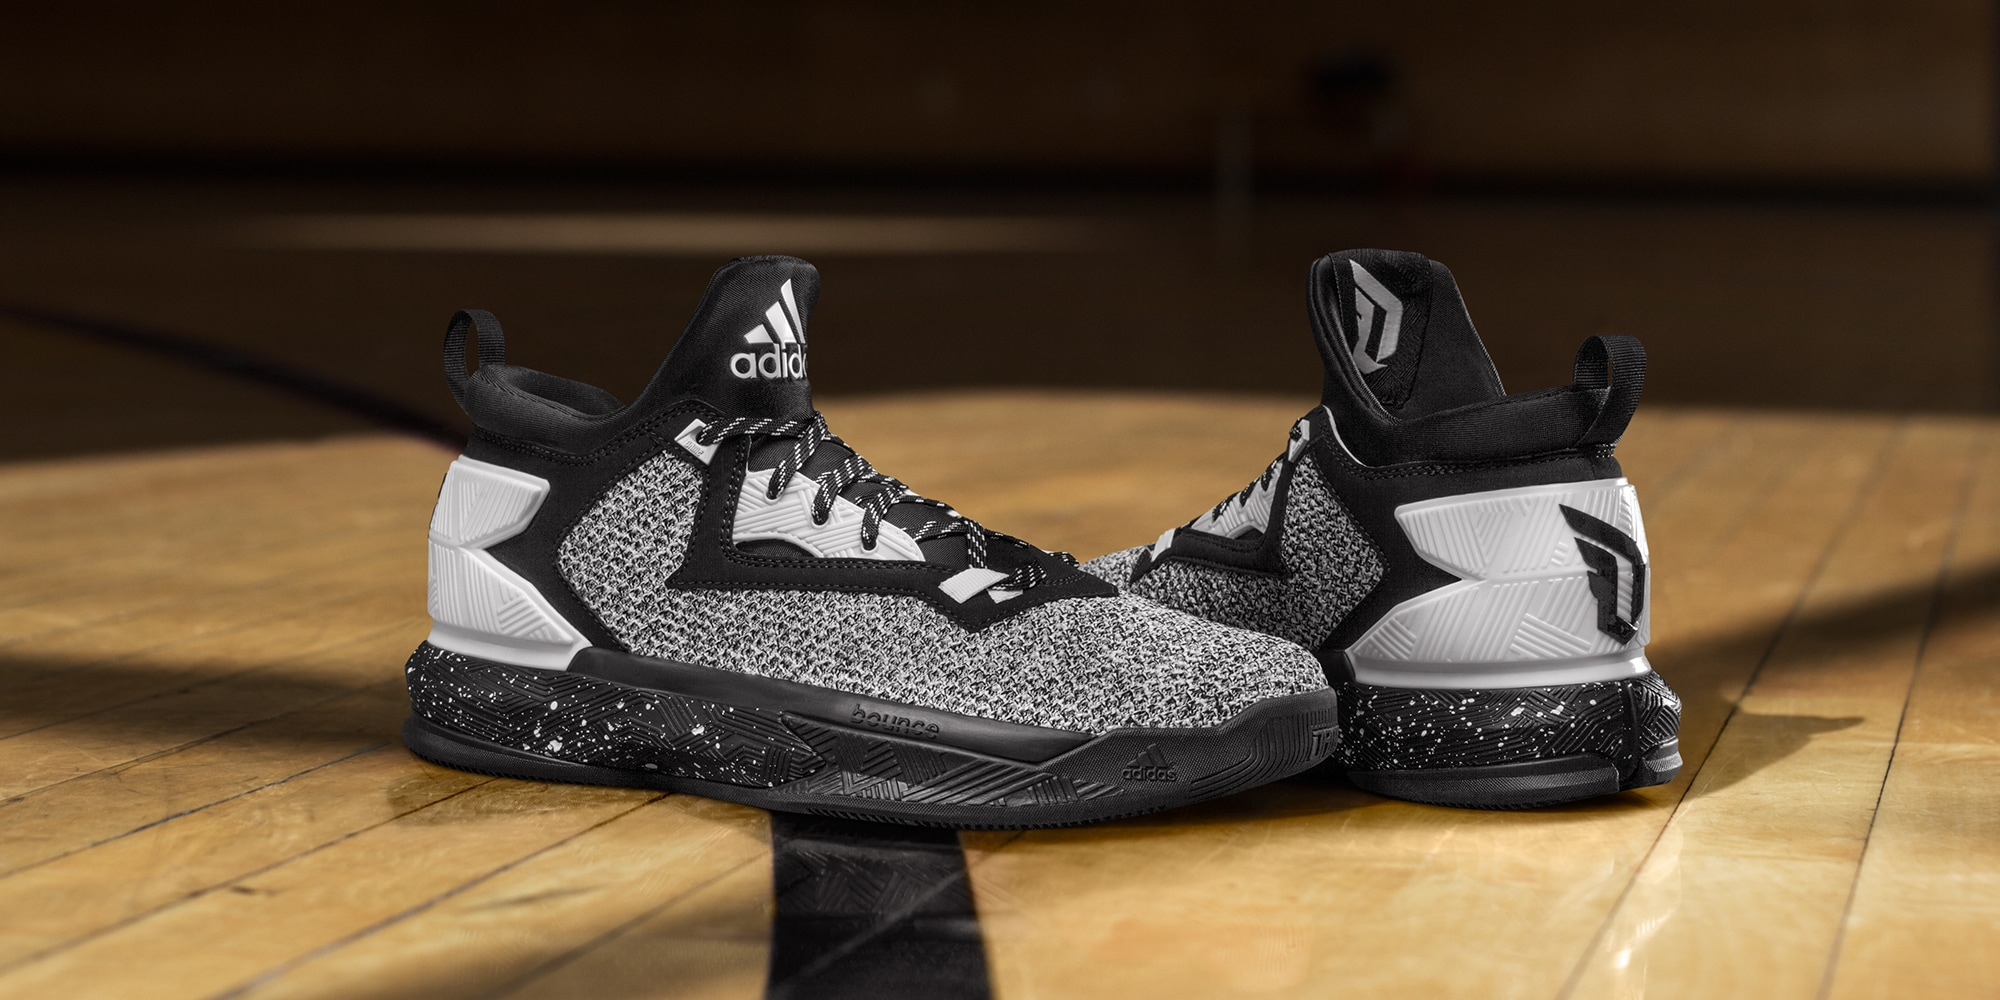 e352cdd78b47 New  Static  Colorway Joins Lineup Of D Lillard 2 Options